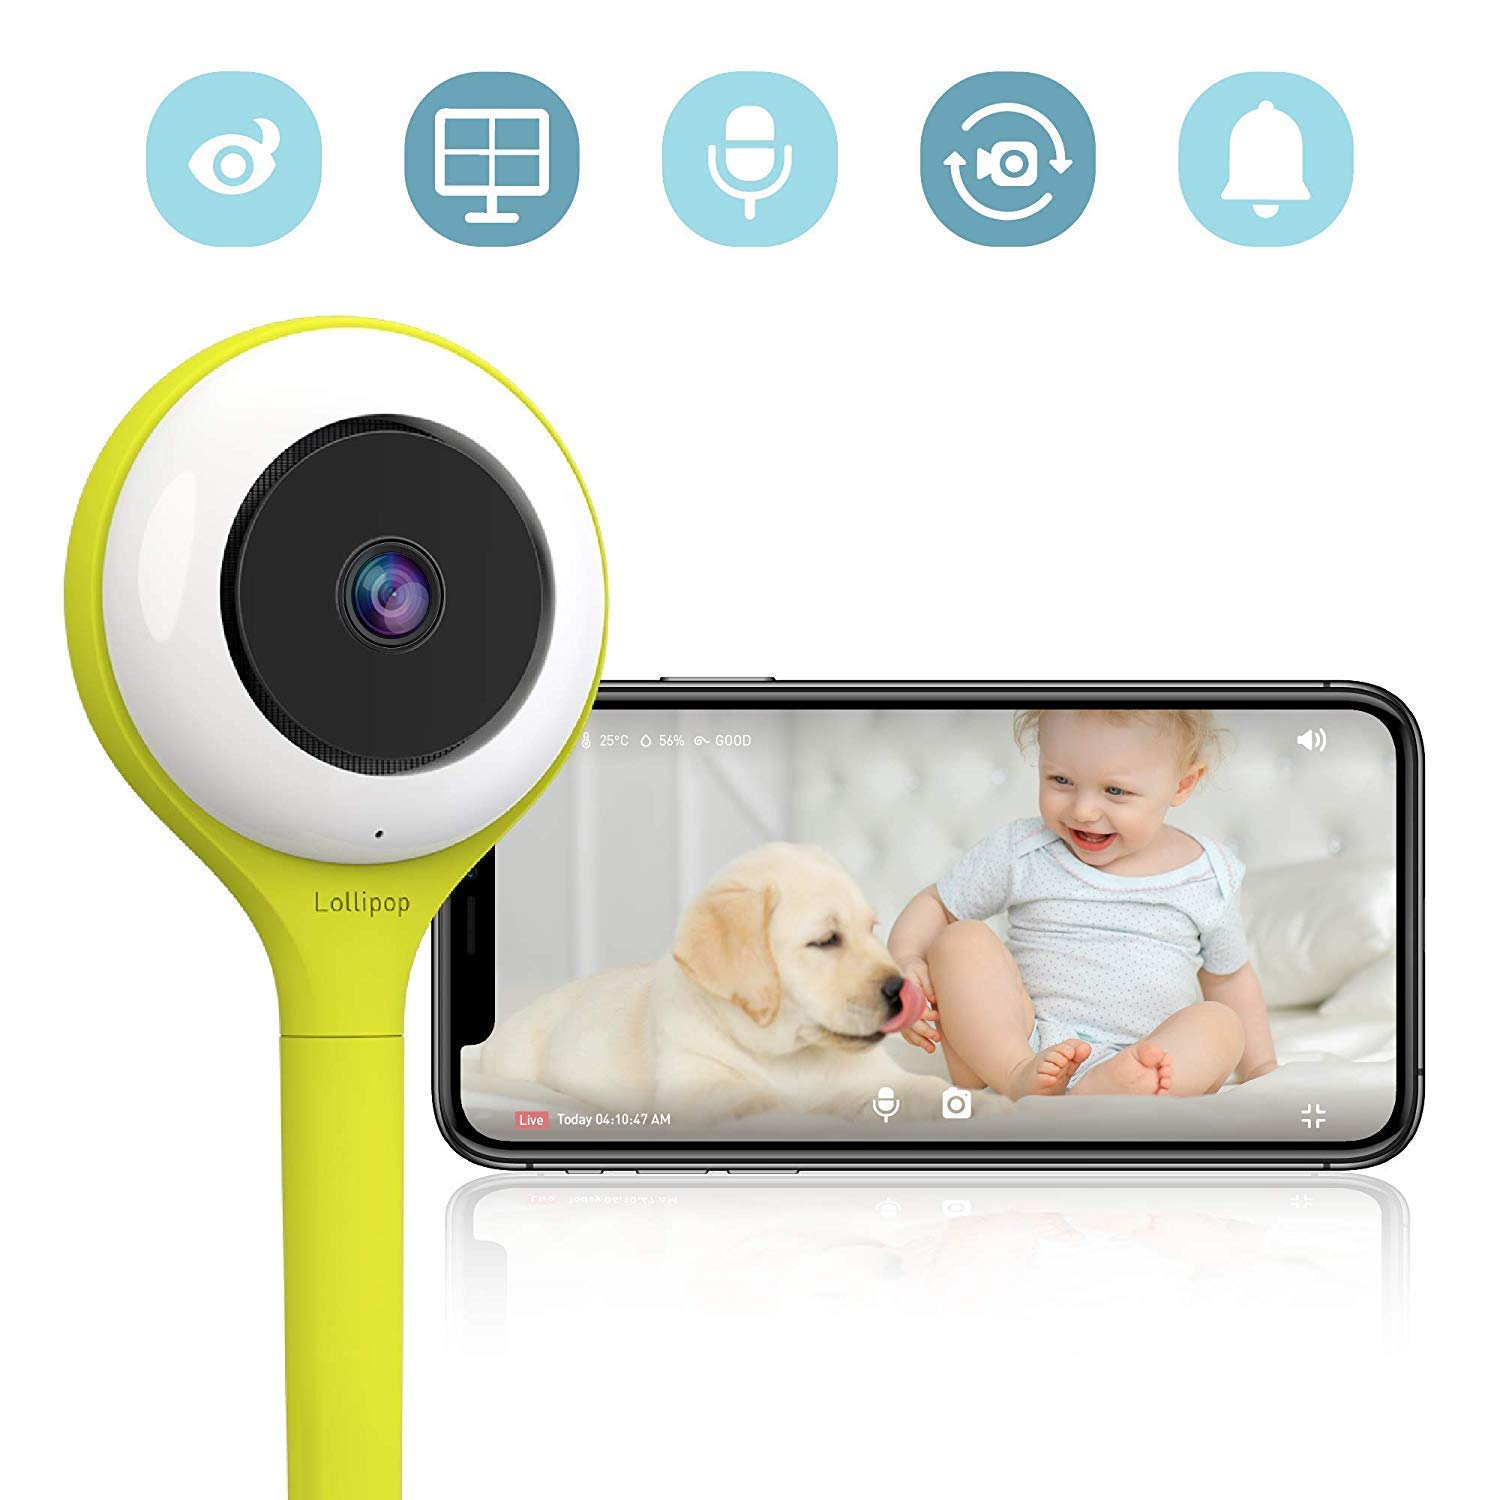 Lollipop Baby Camera - Pistaccio